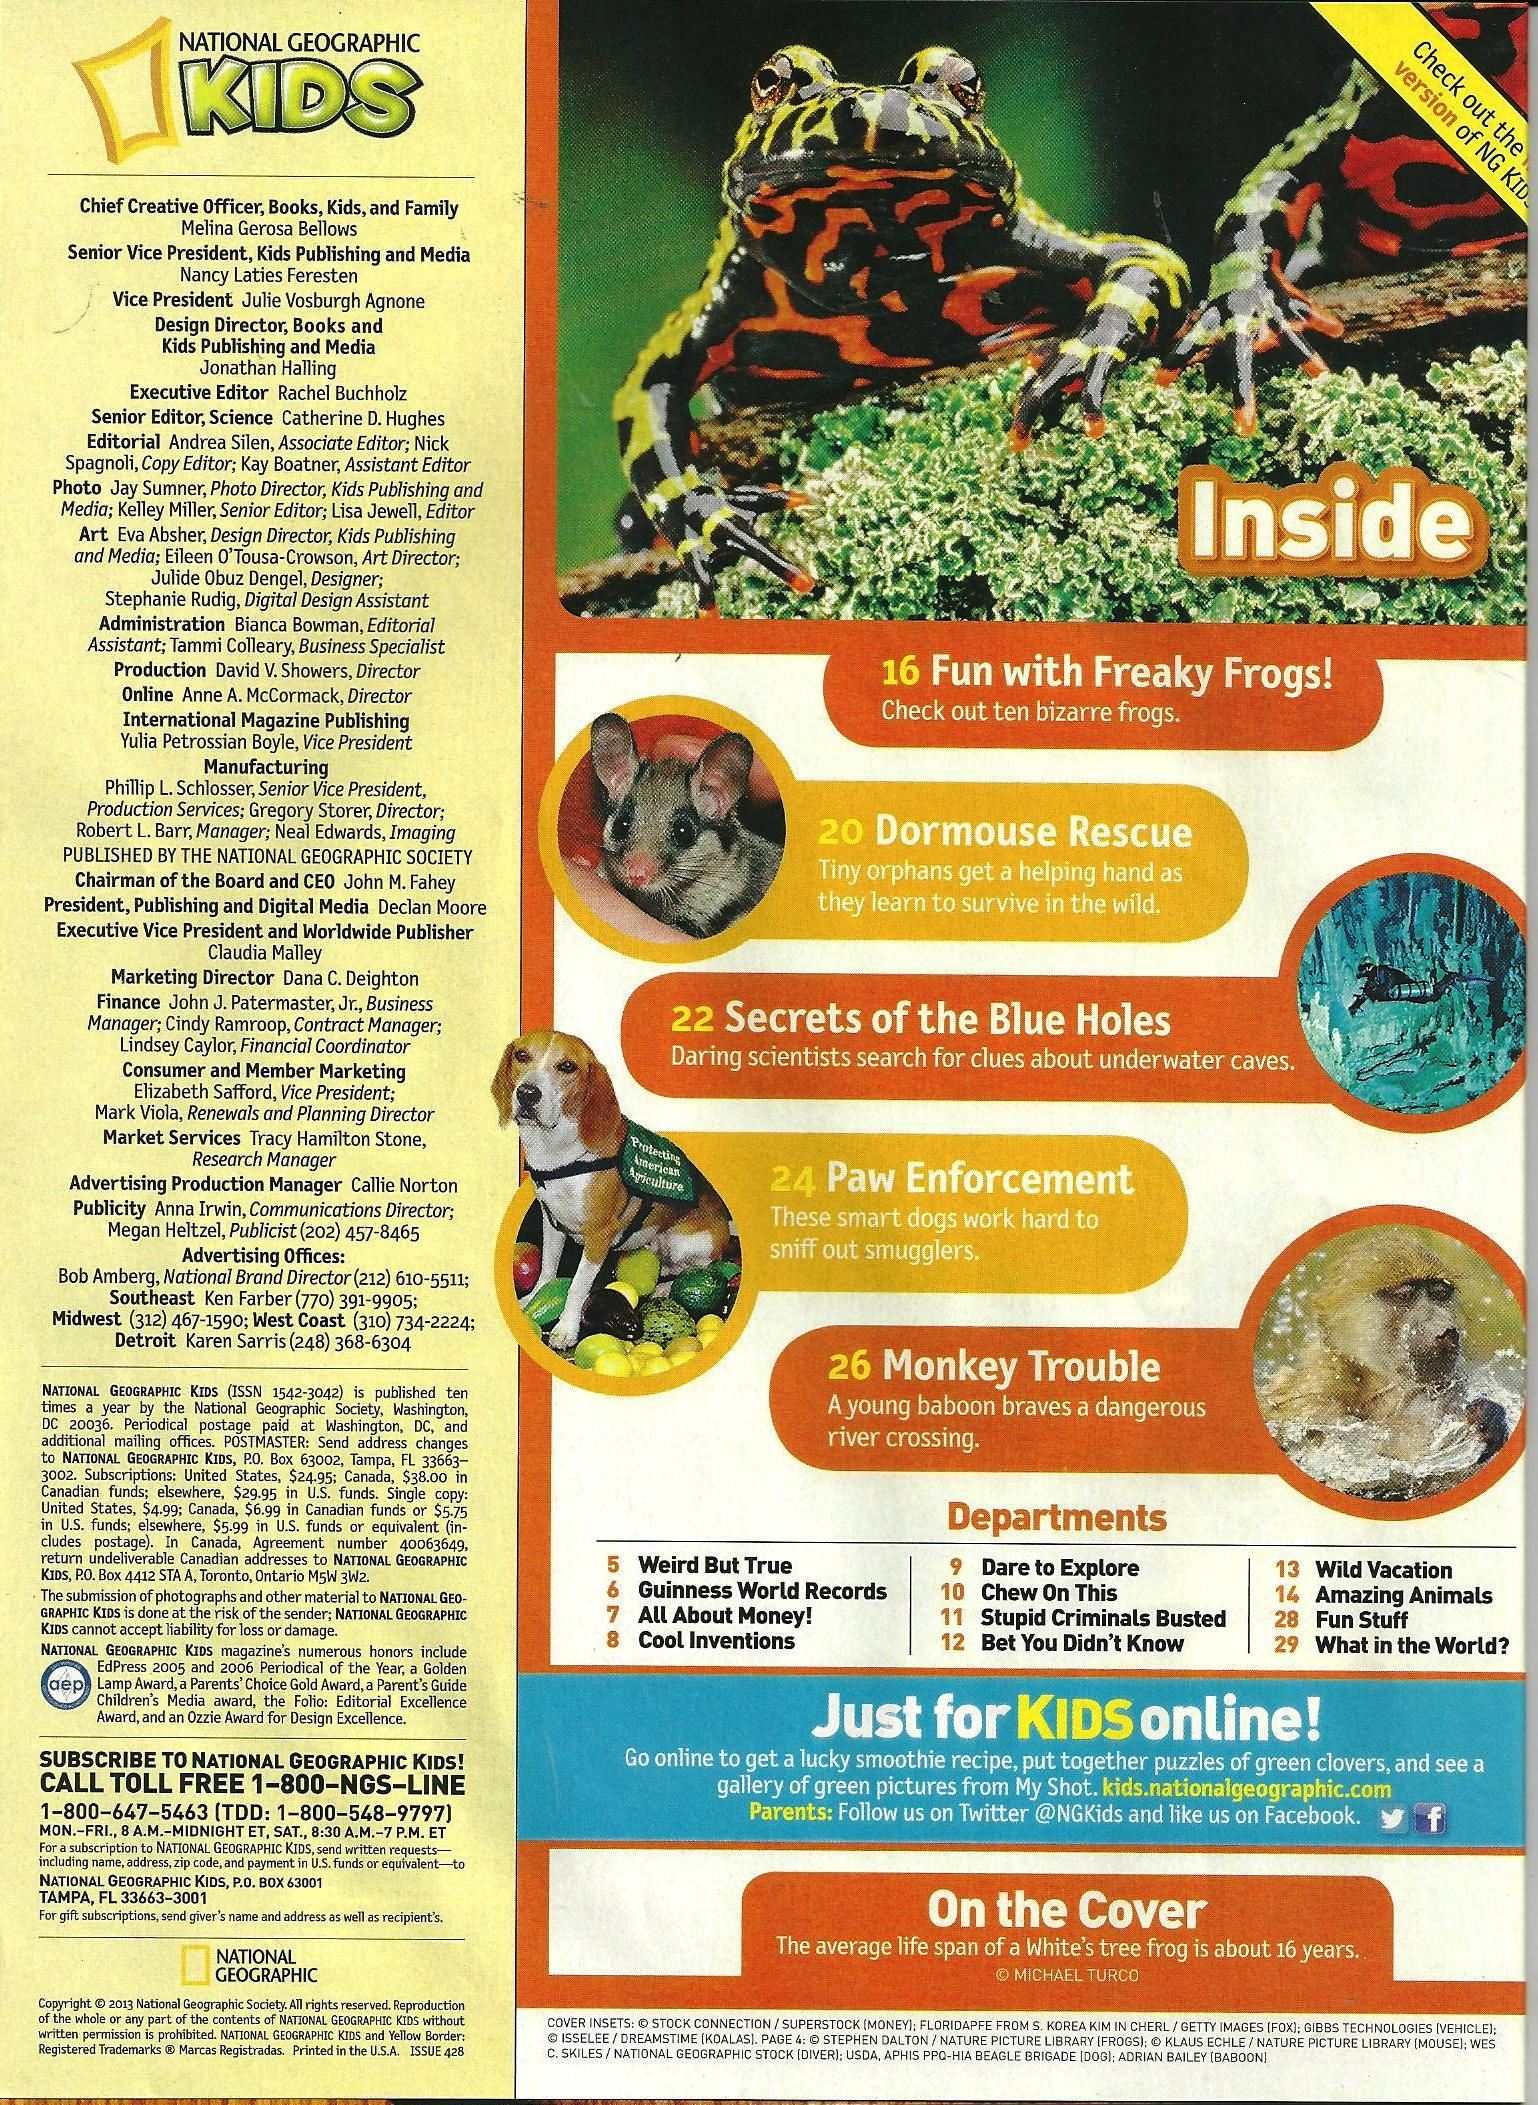 National Geographic for Kids March 2013 Table of Contents Library